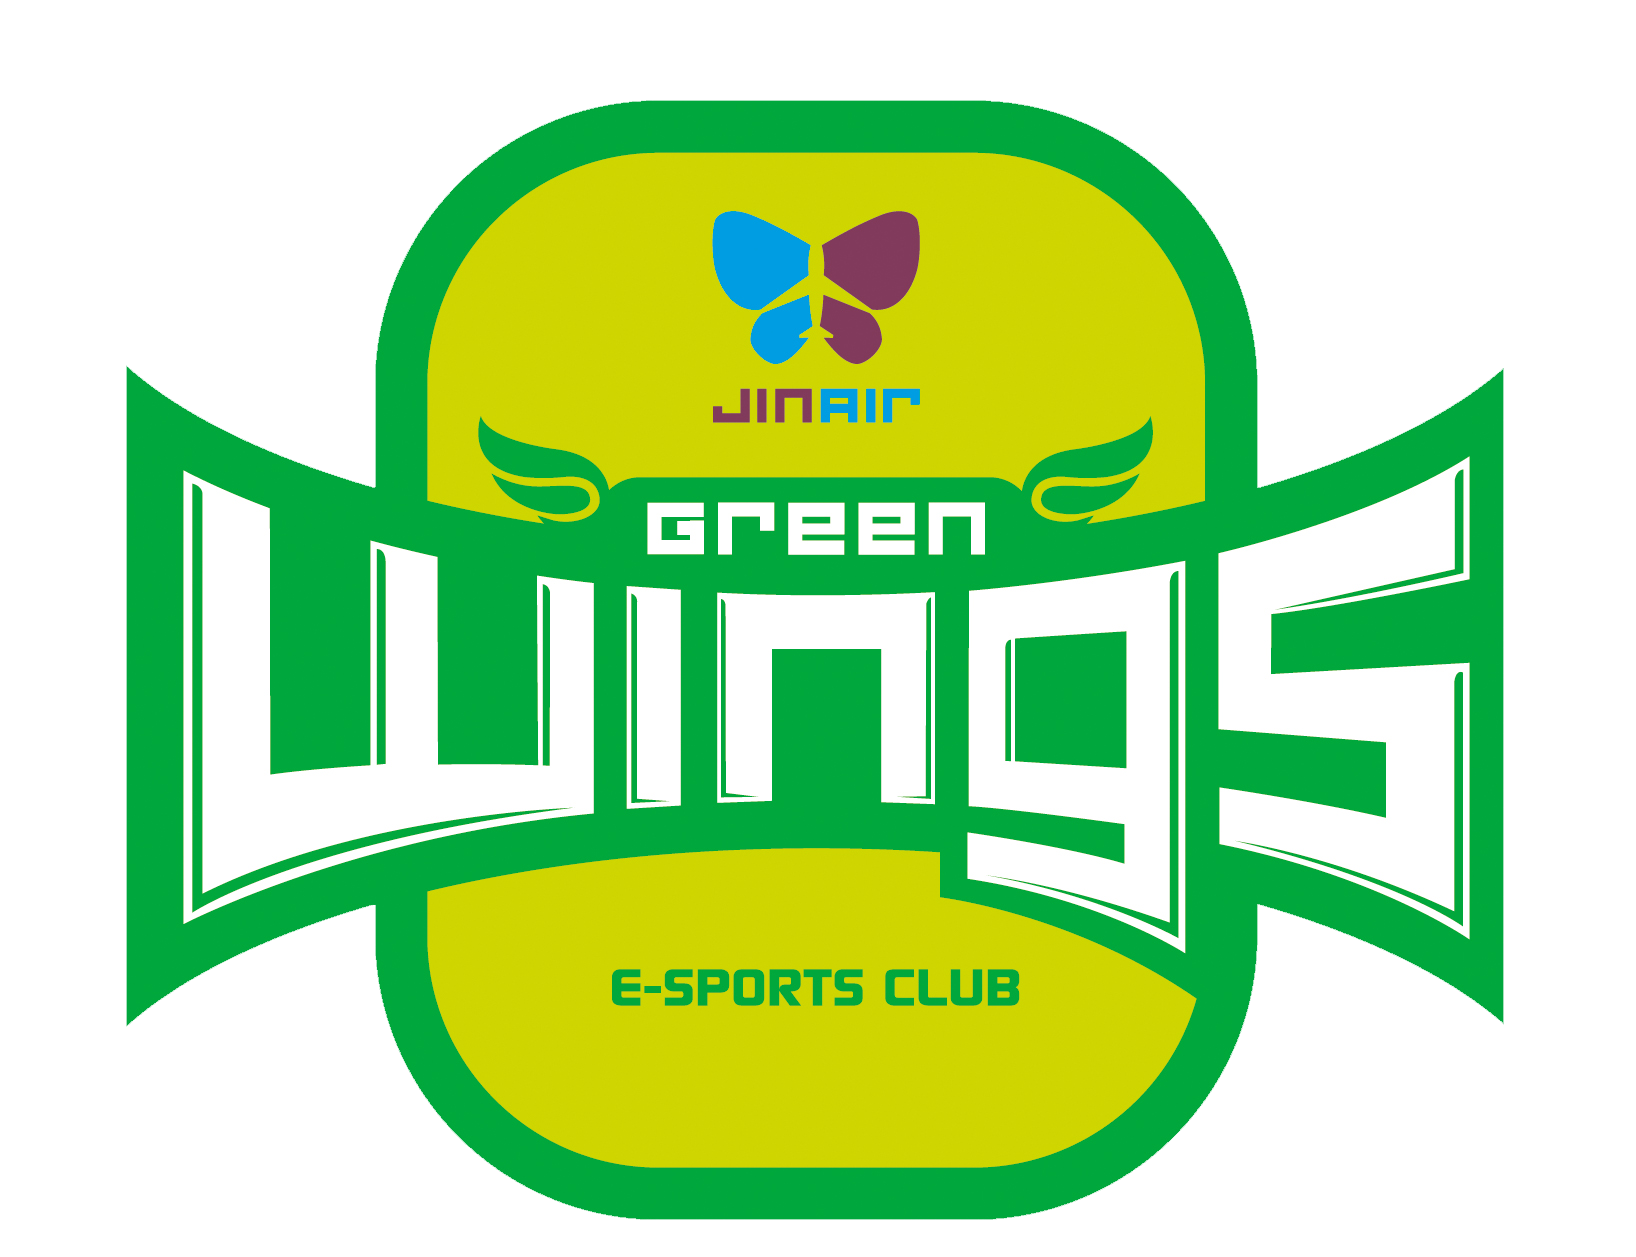 Jin Air Green Wings-logo